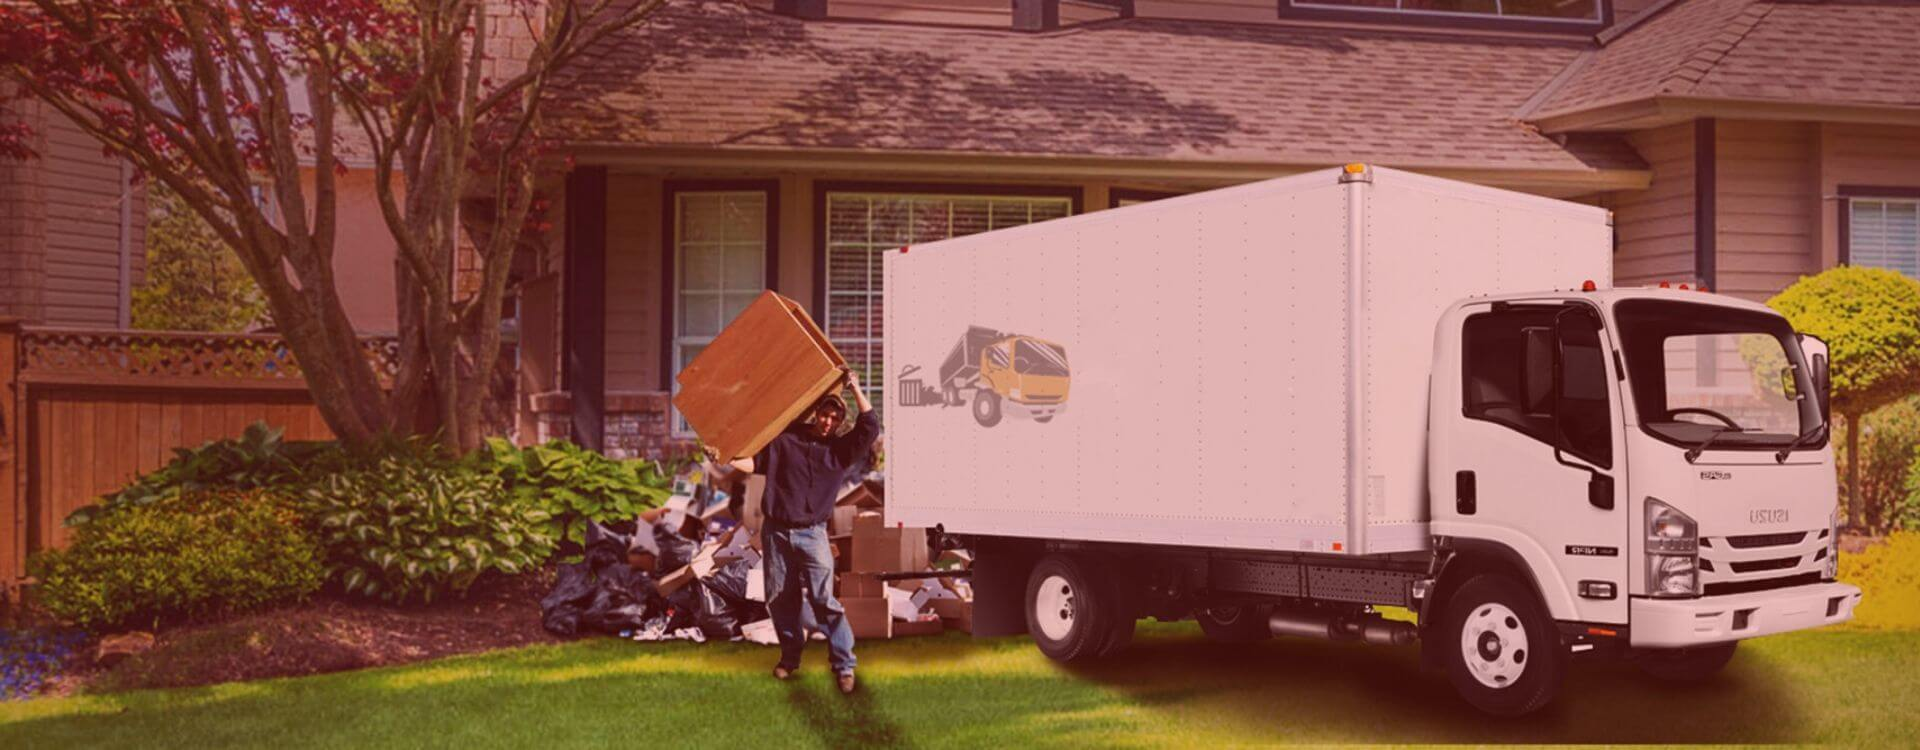 Junk removal 1